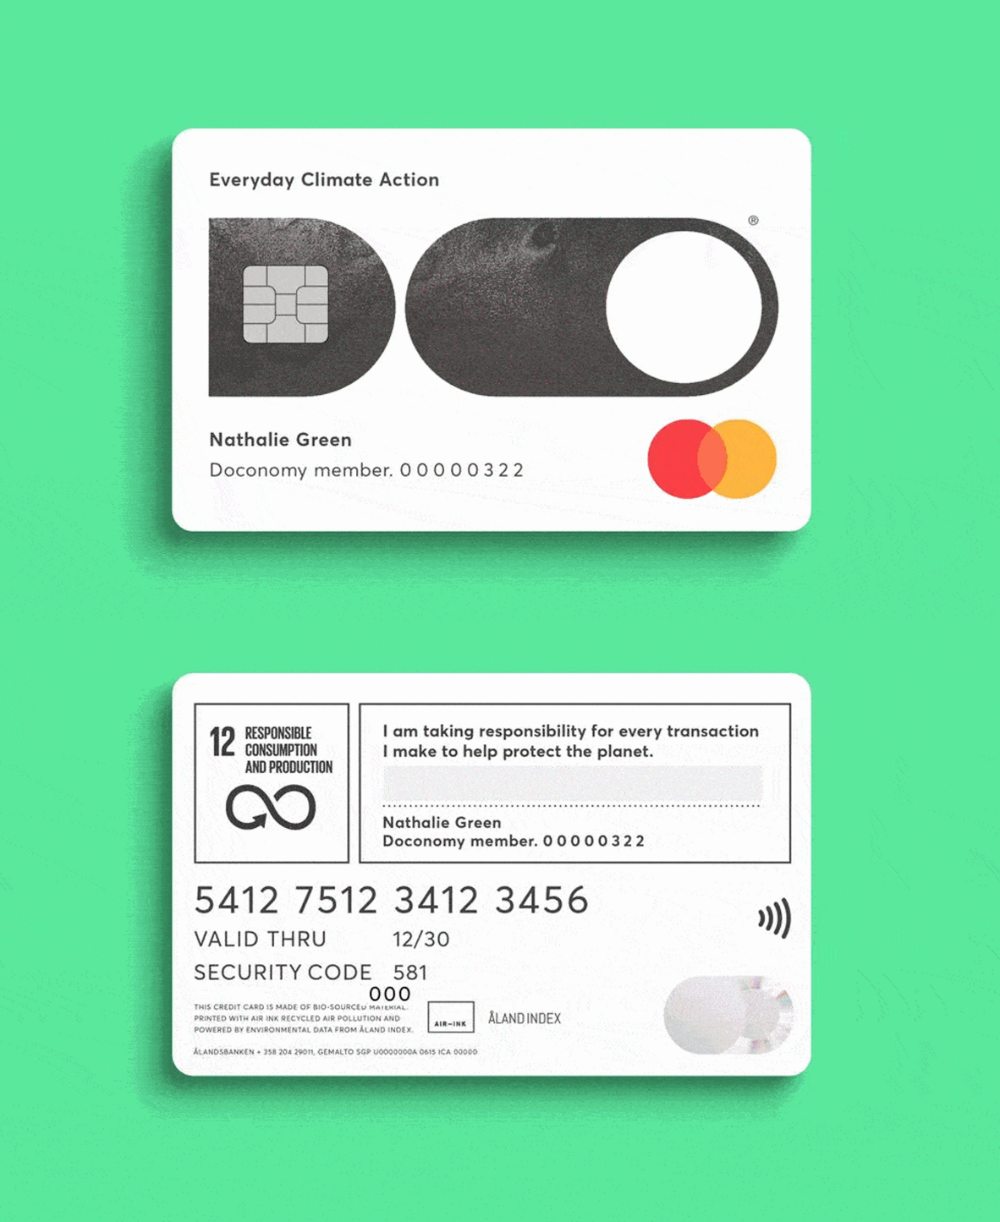 Doconomy Launches Credit Card With A Carbon Emission Spending Limit Credit Card Design Credit Card App Card Design